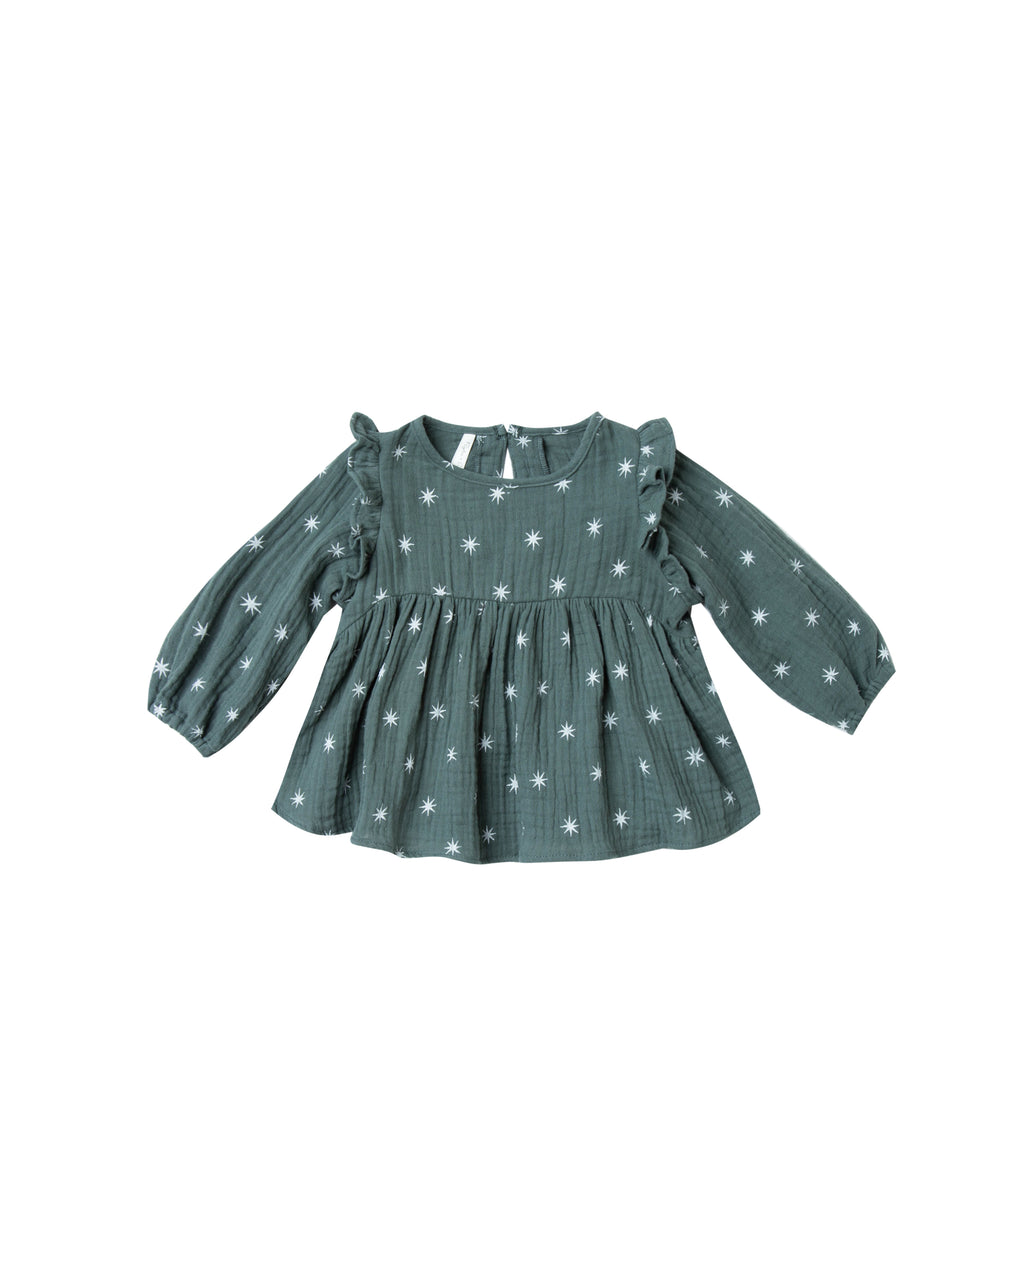 Rylee & Cru Northern Star Piper Dress